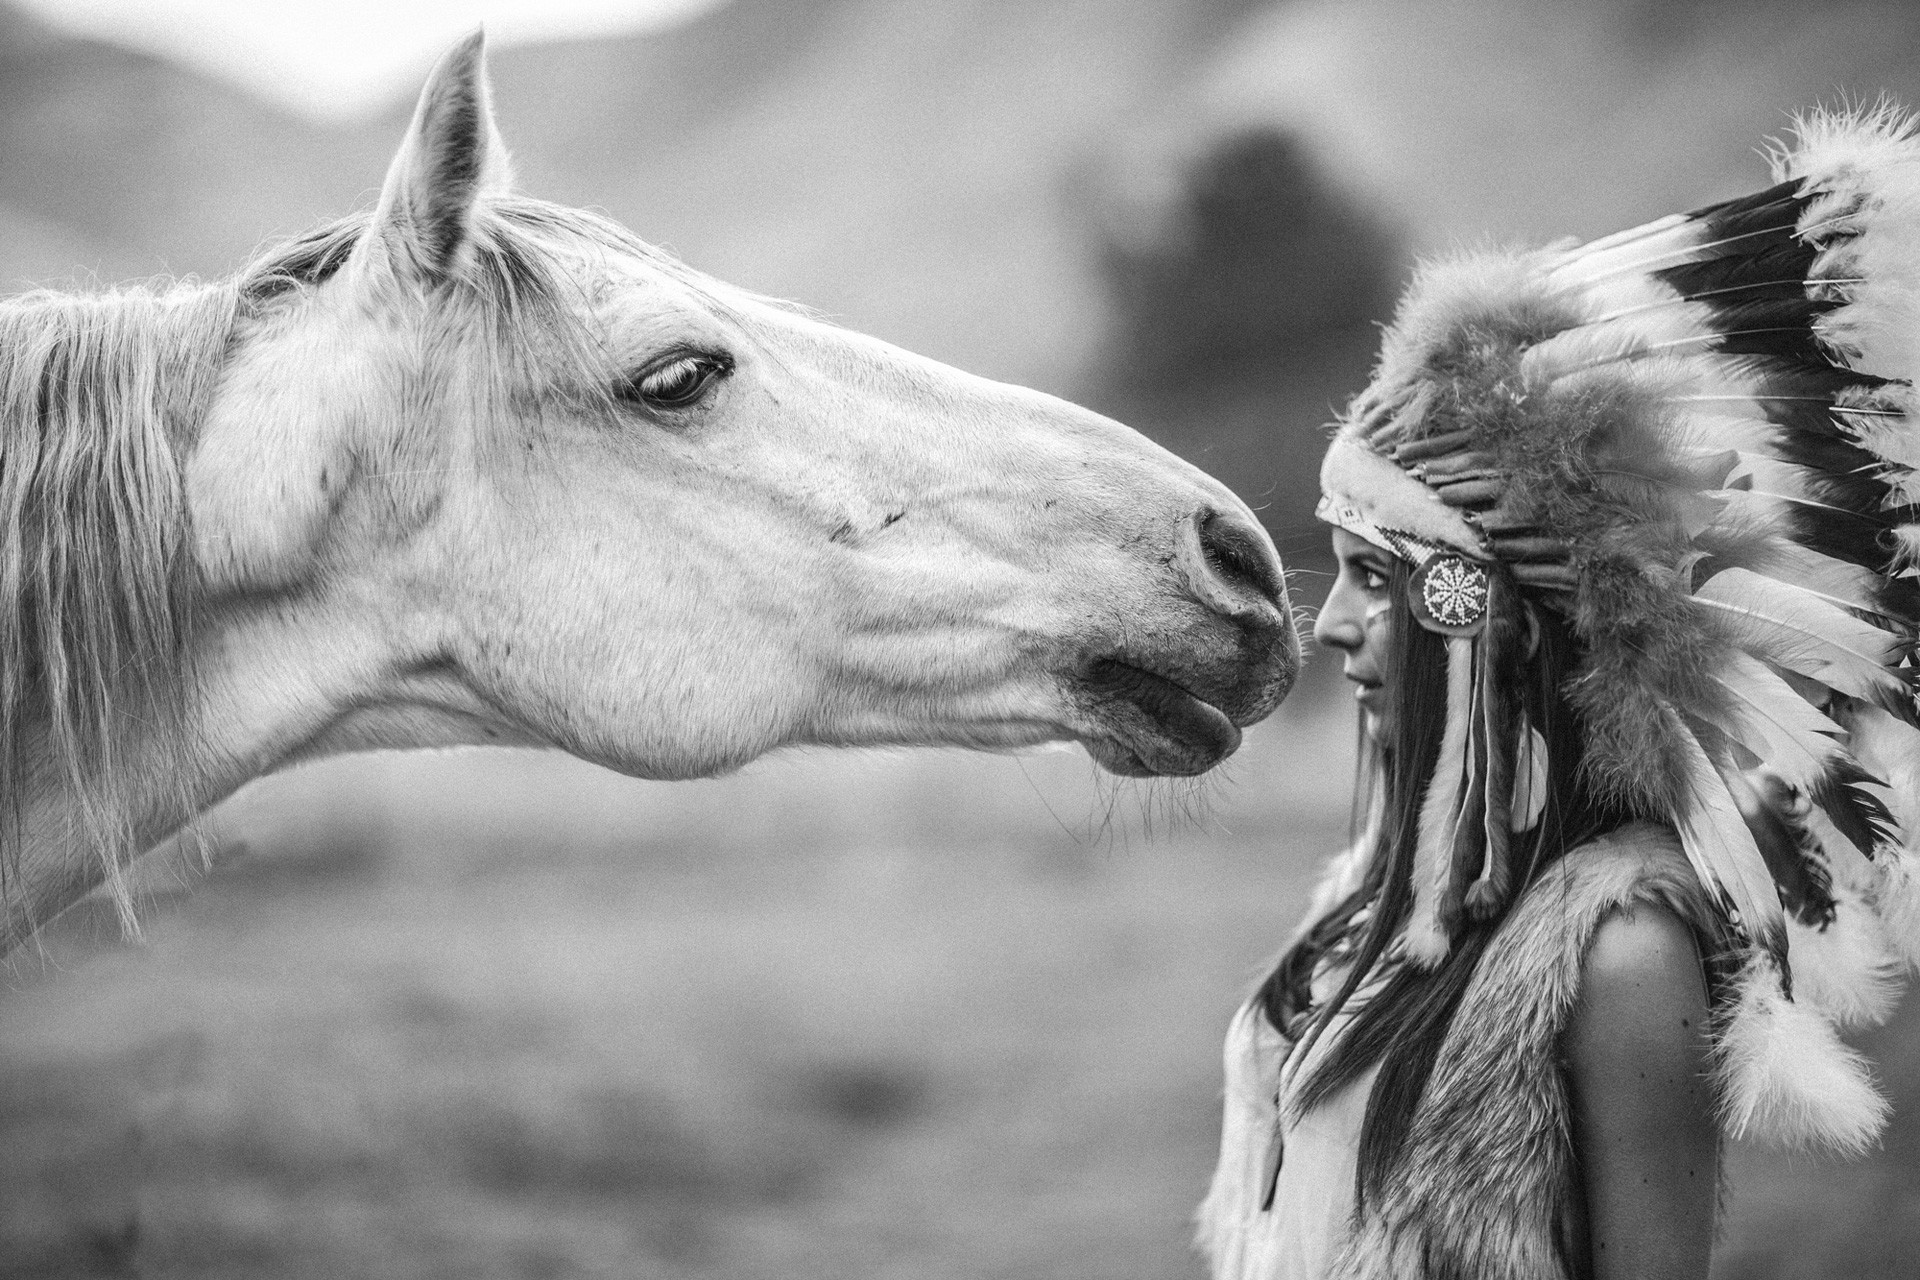 1920x1280 native american girl horse desktop background